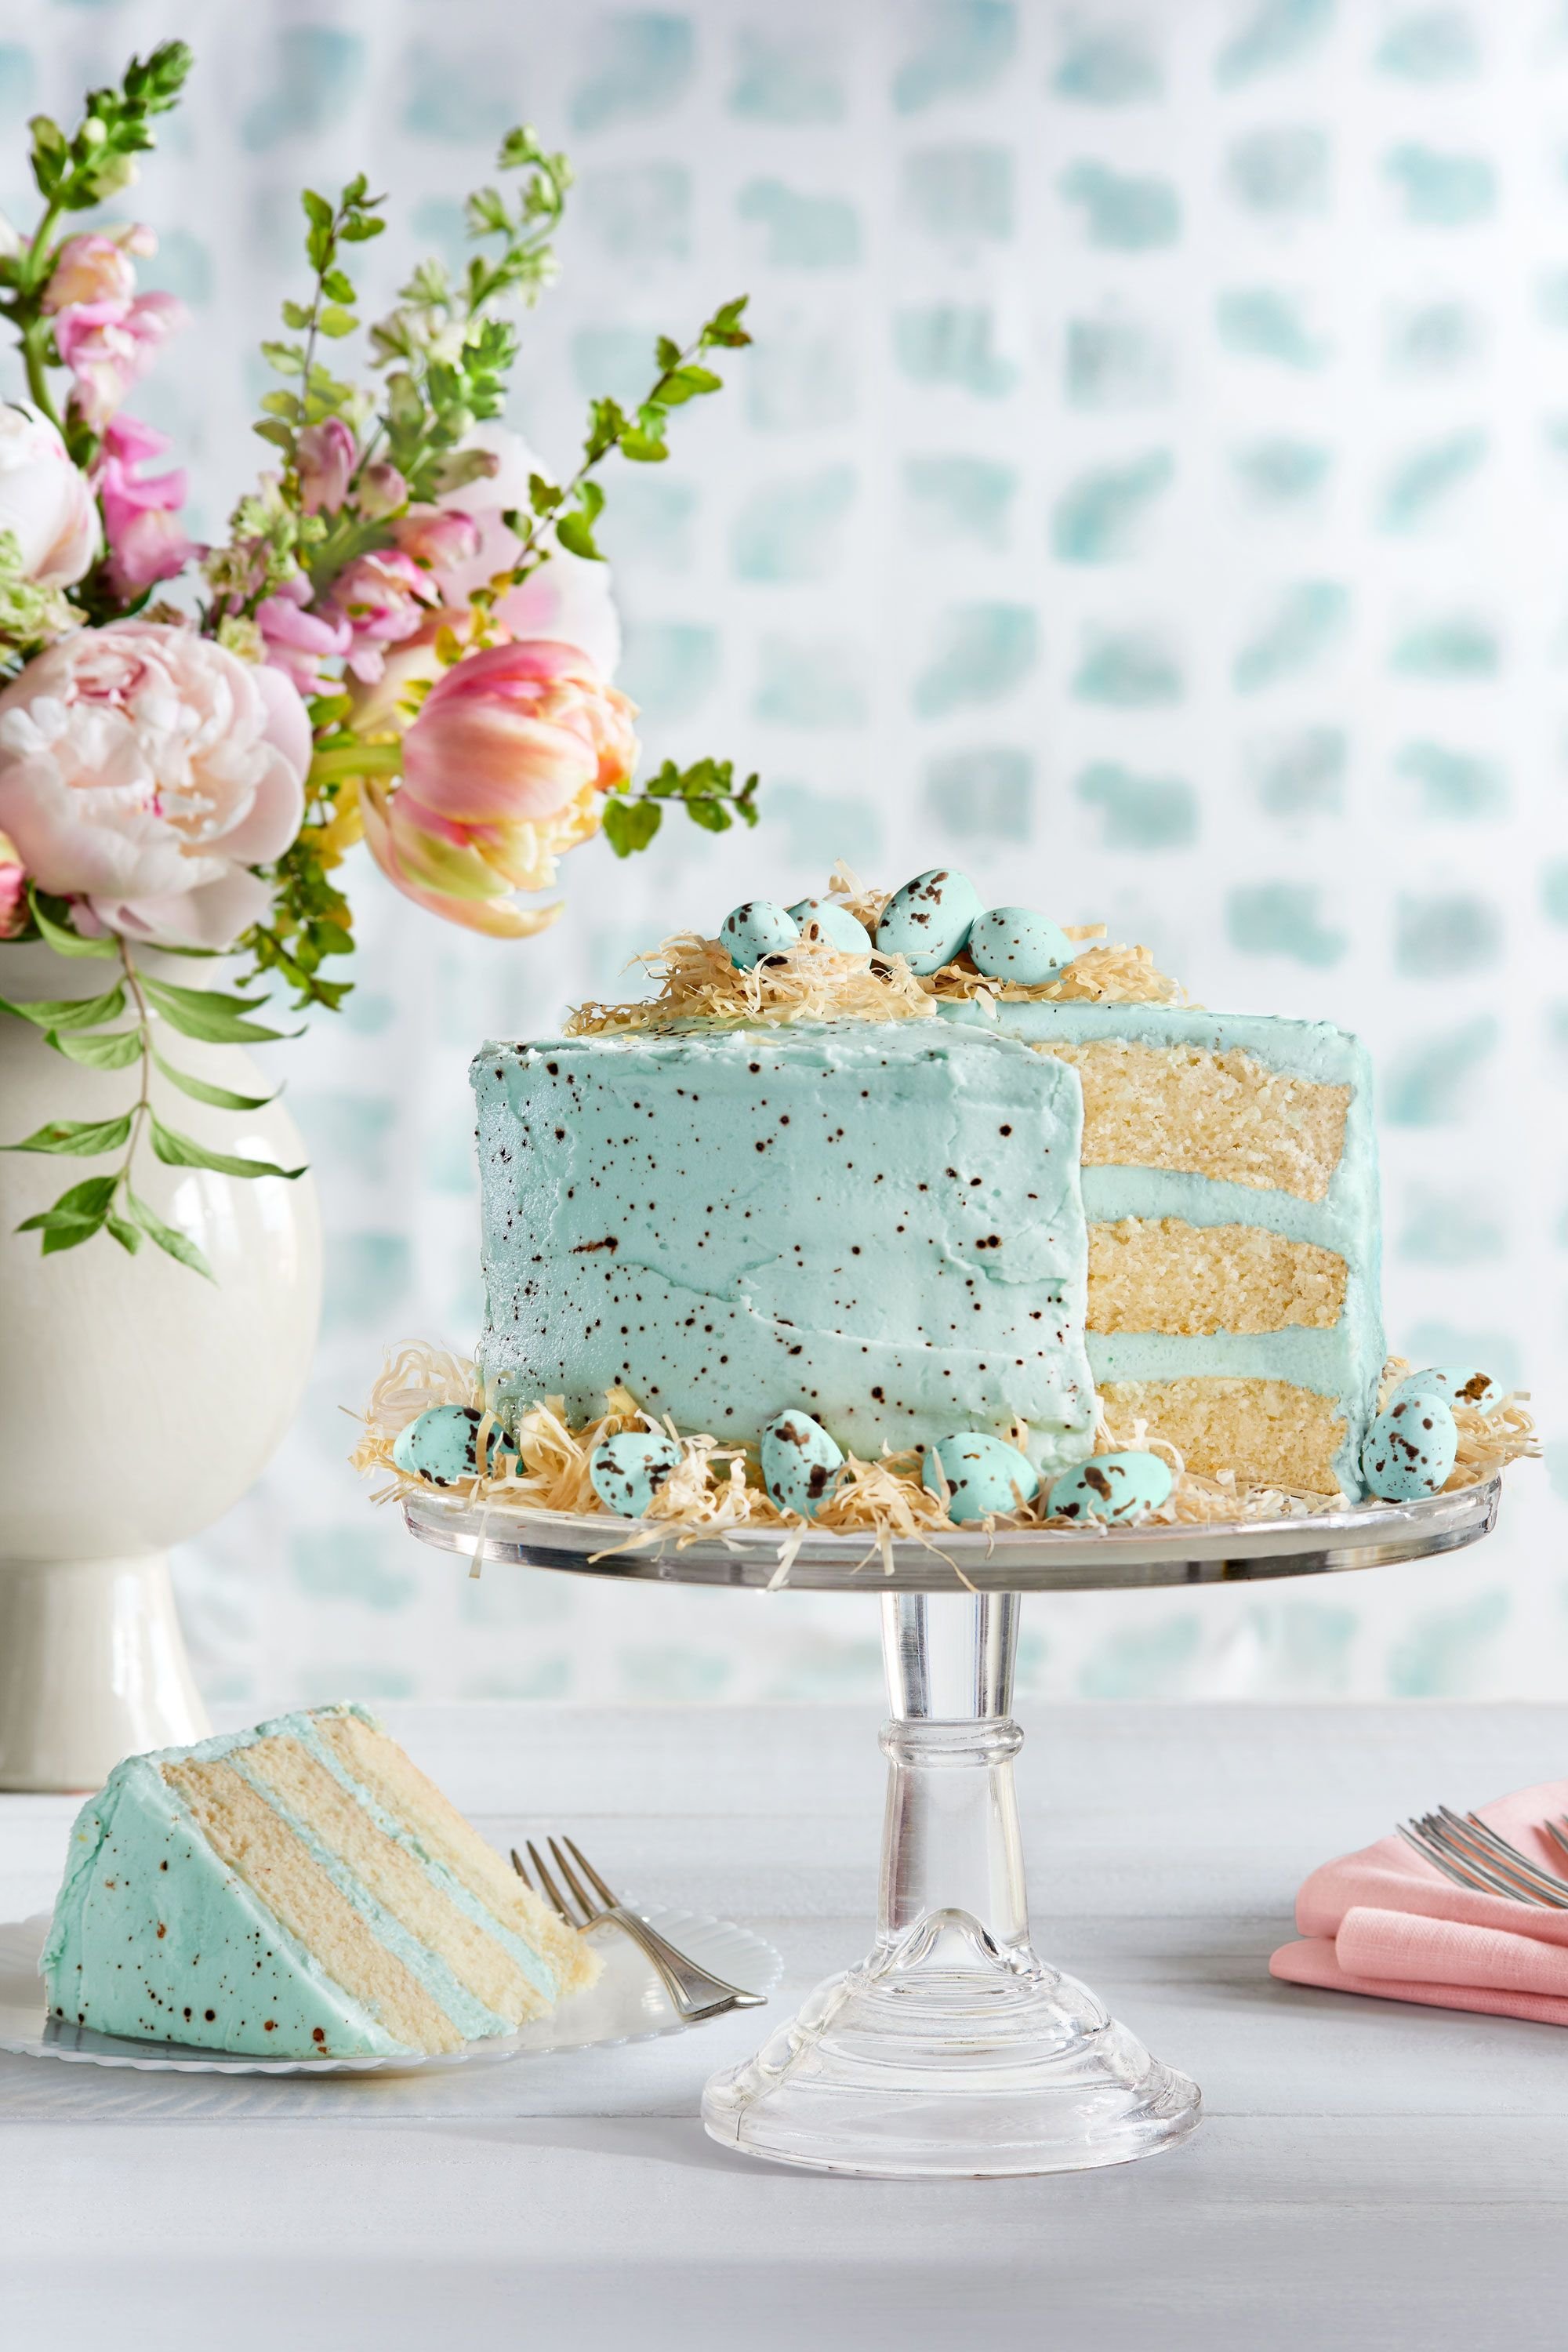 15 beautiful cake decorating ideas how to decorate a pretty cake mightylinksfo